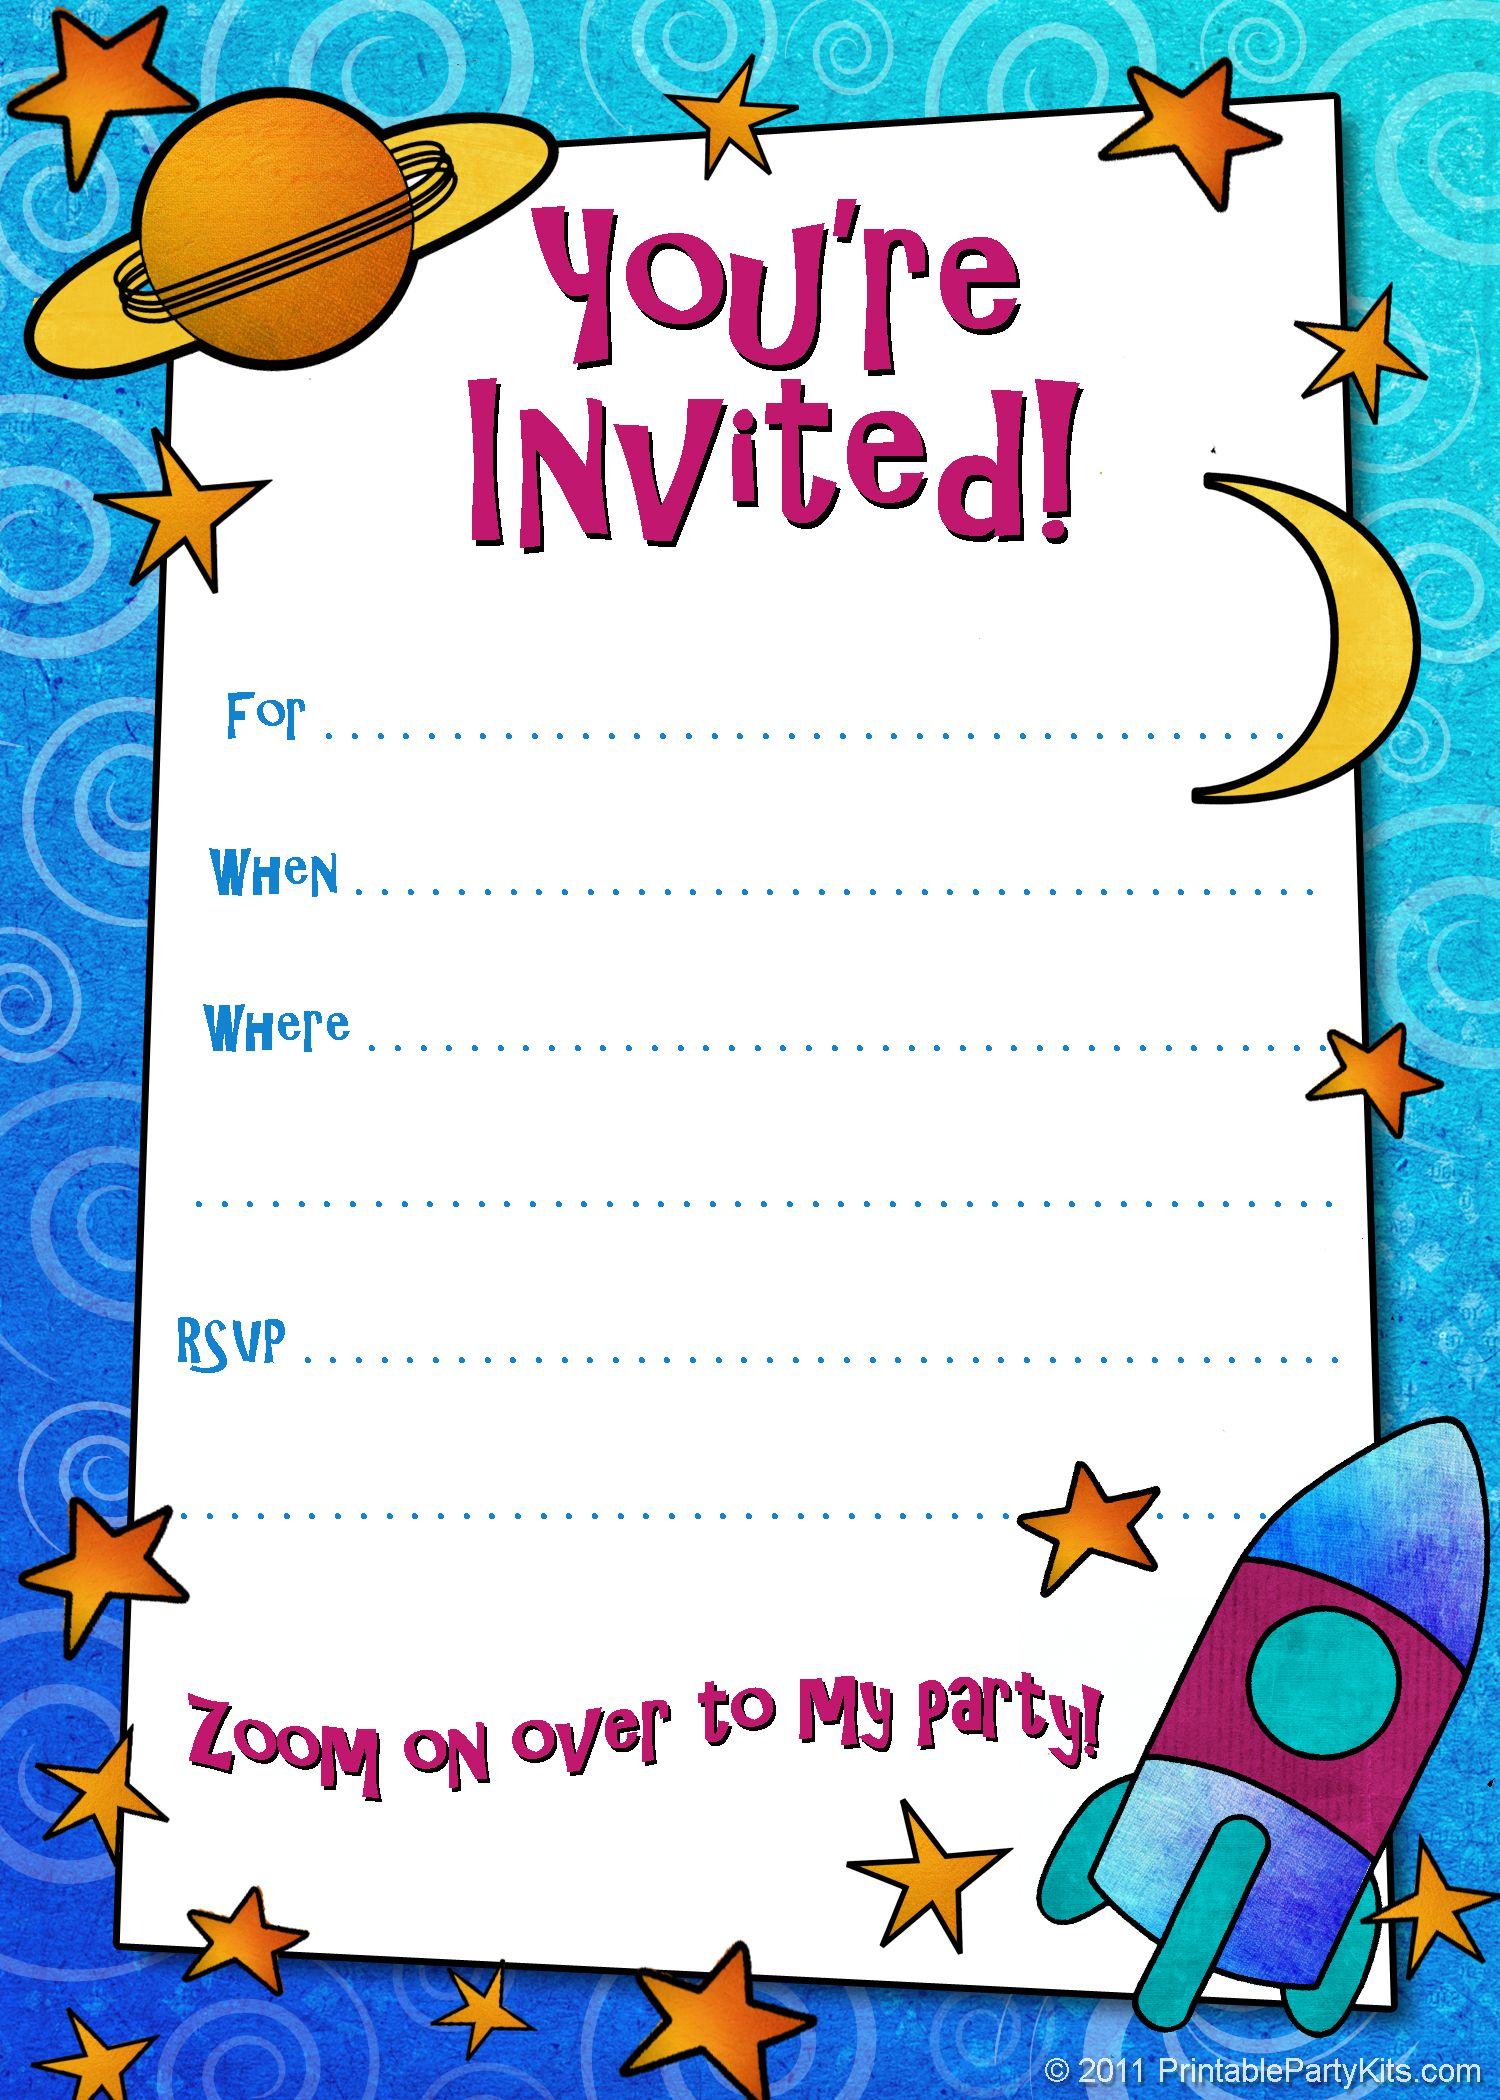 Free Printable Boys Birthday Party Invitations Boy Birthday - Party invitation template: free science birthday party invitation templates